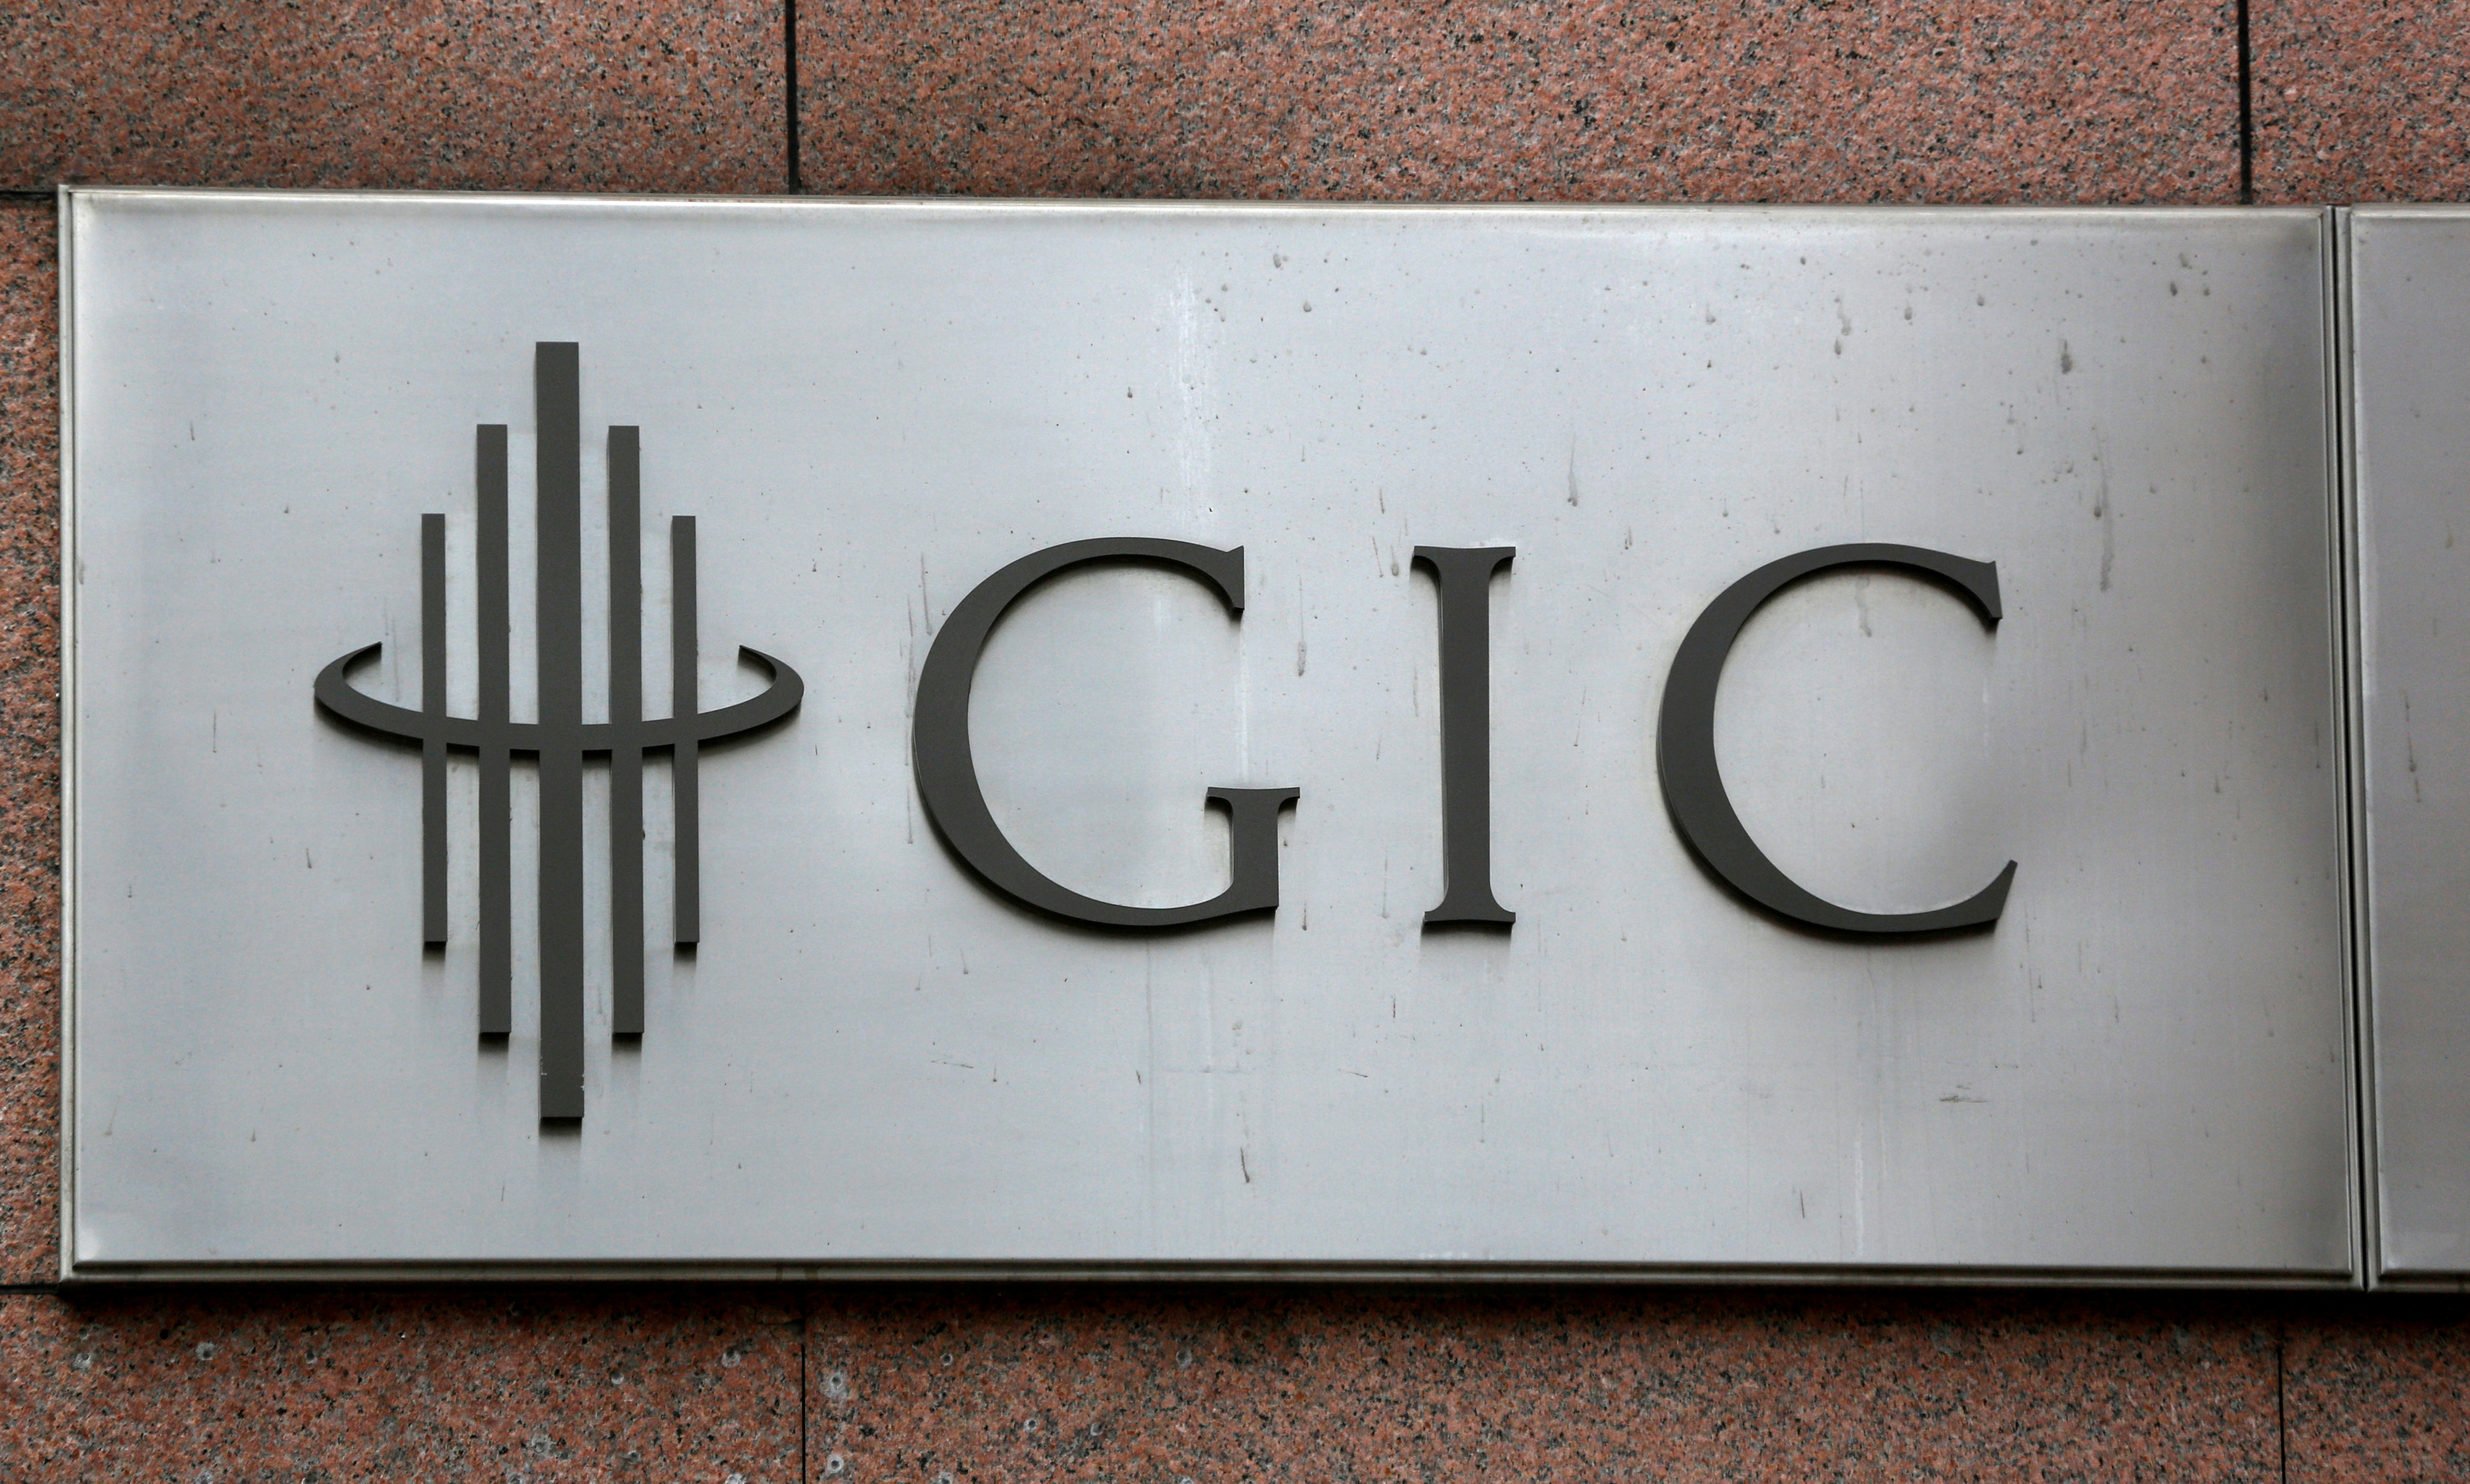 The logo for Singapore sovereign wealth fund GIC Pte Ltd, is seen on a building in Singapore July 6, 2017. REUTERS/Darren Whiteside/File Photo